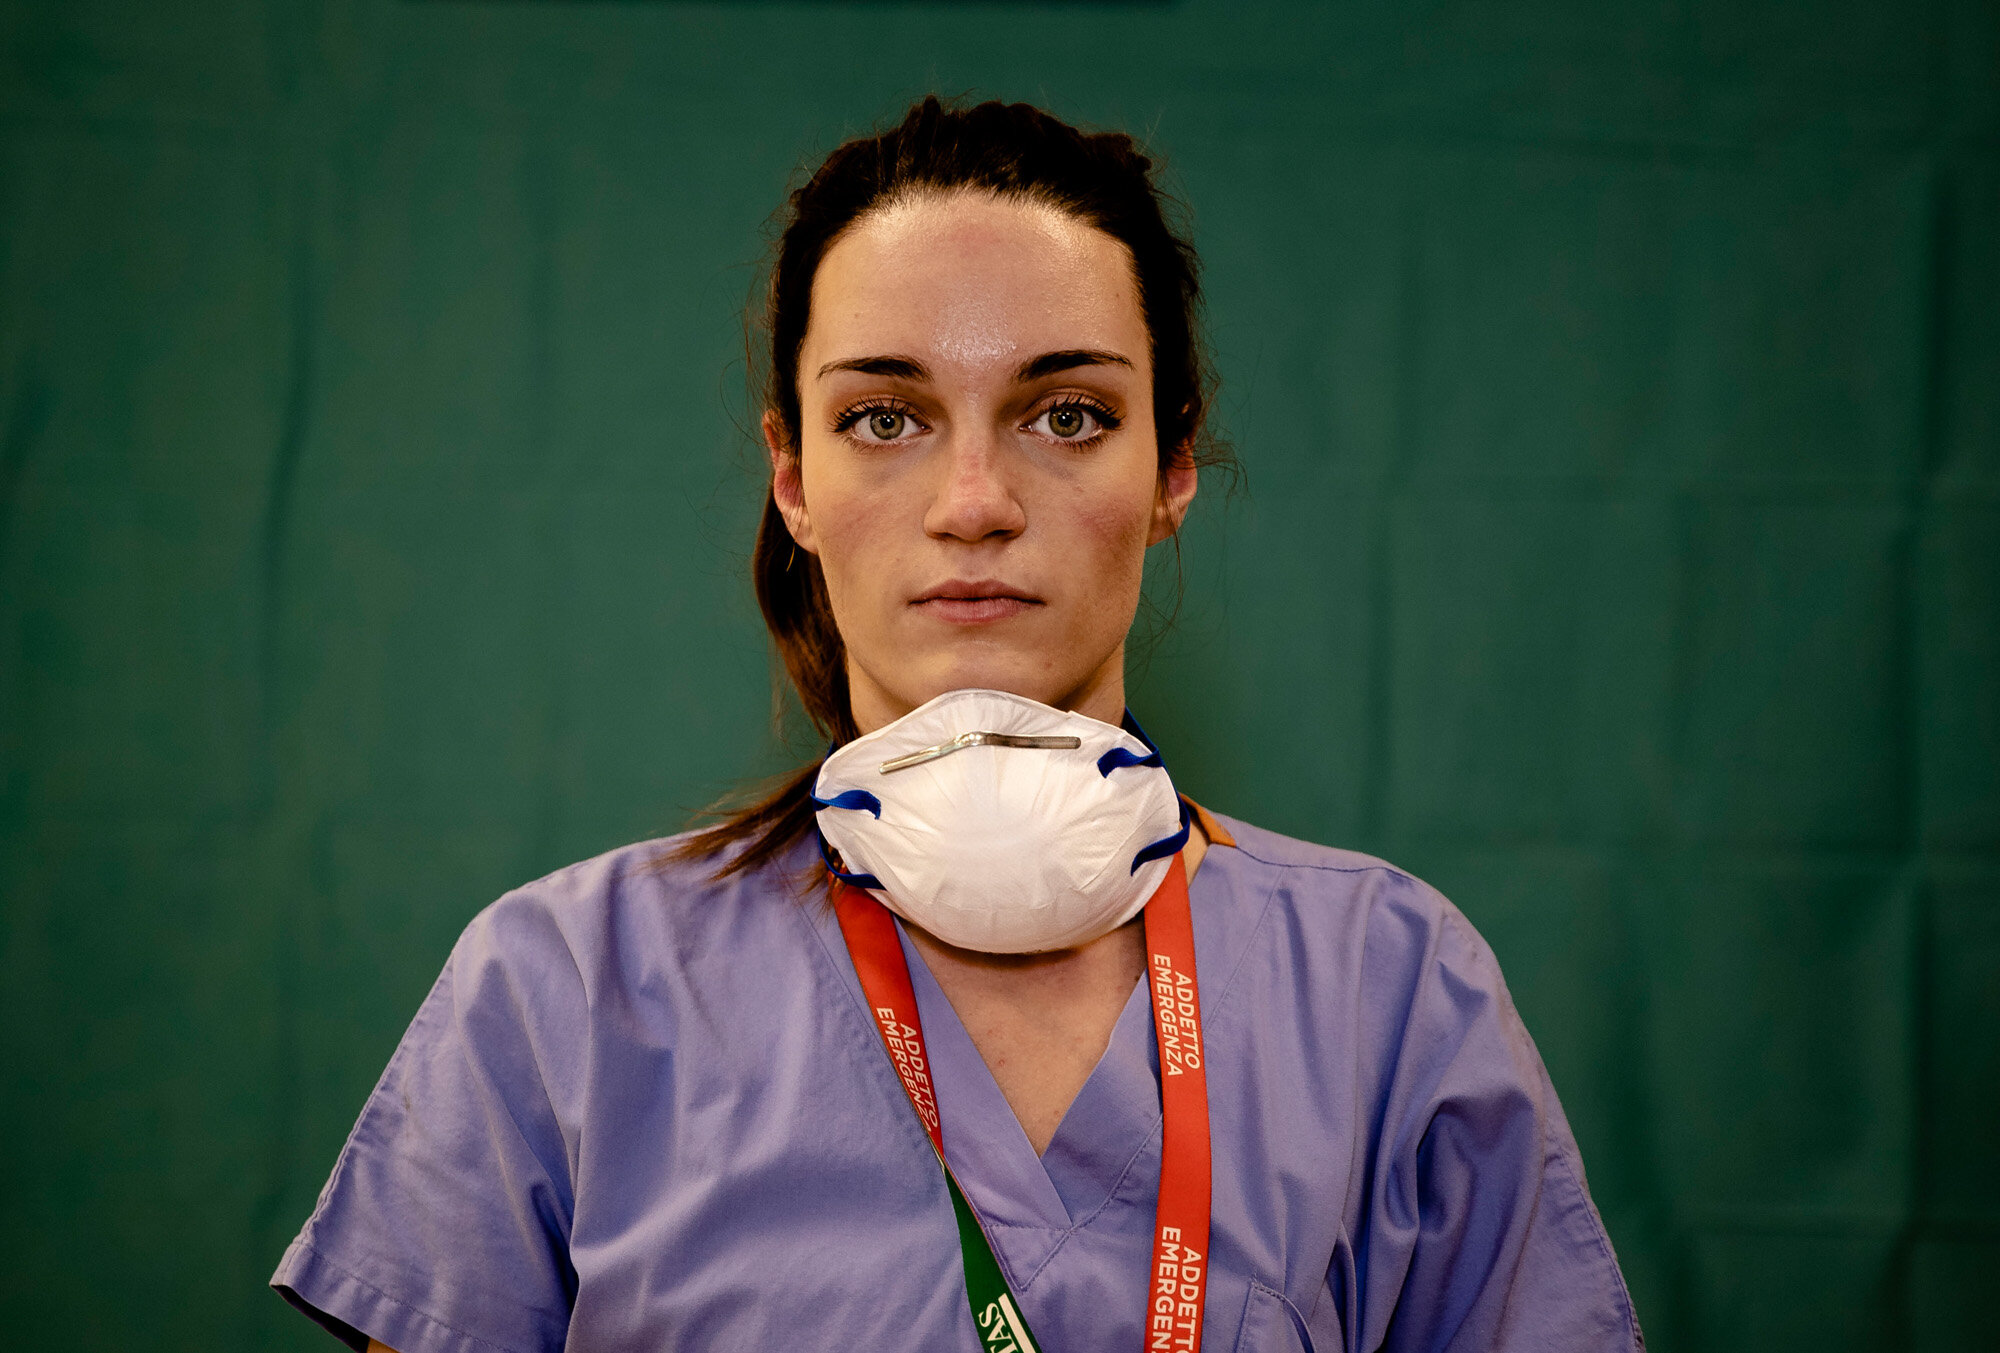 Martina Papponetti, 25, a nurse at the Humanitas Gavazzeni Hospital in Bergamo, Italy, poses for a portrait at the end of her shift on the front lines of the coronavirus pandemic on March 27, 2020. (AP Photo/Antonio Calanni)